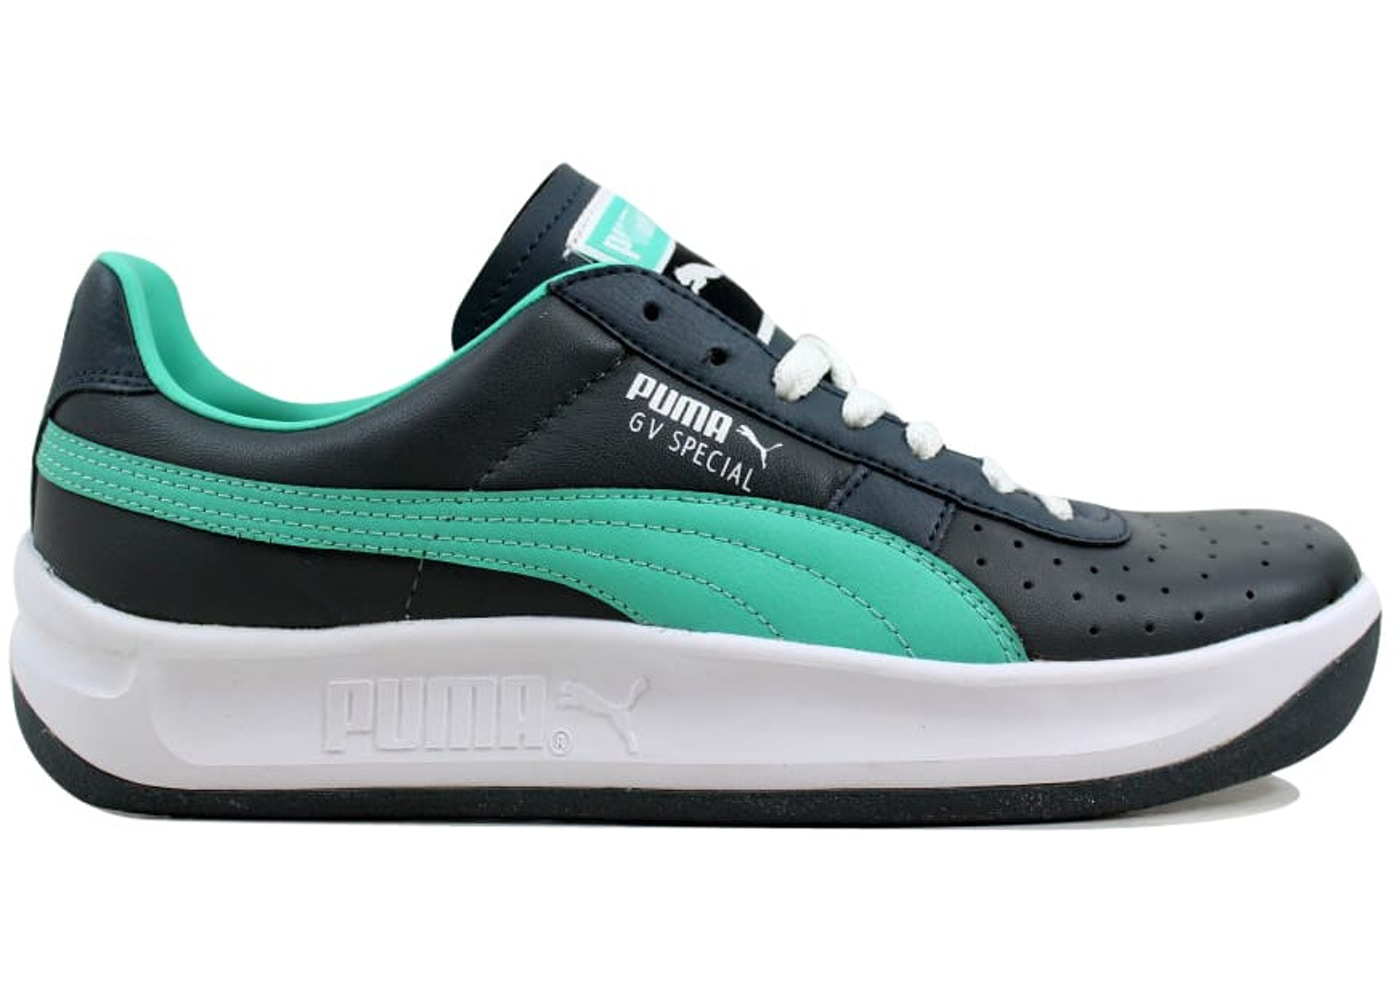 hot sale online 0bfe0 6085a Puma GV Special Turbulence